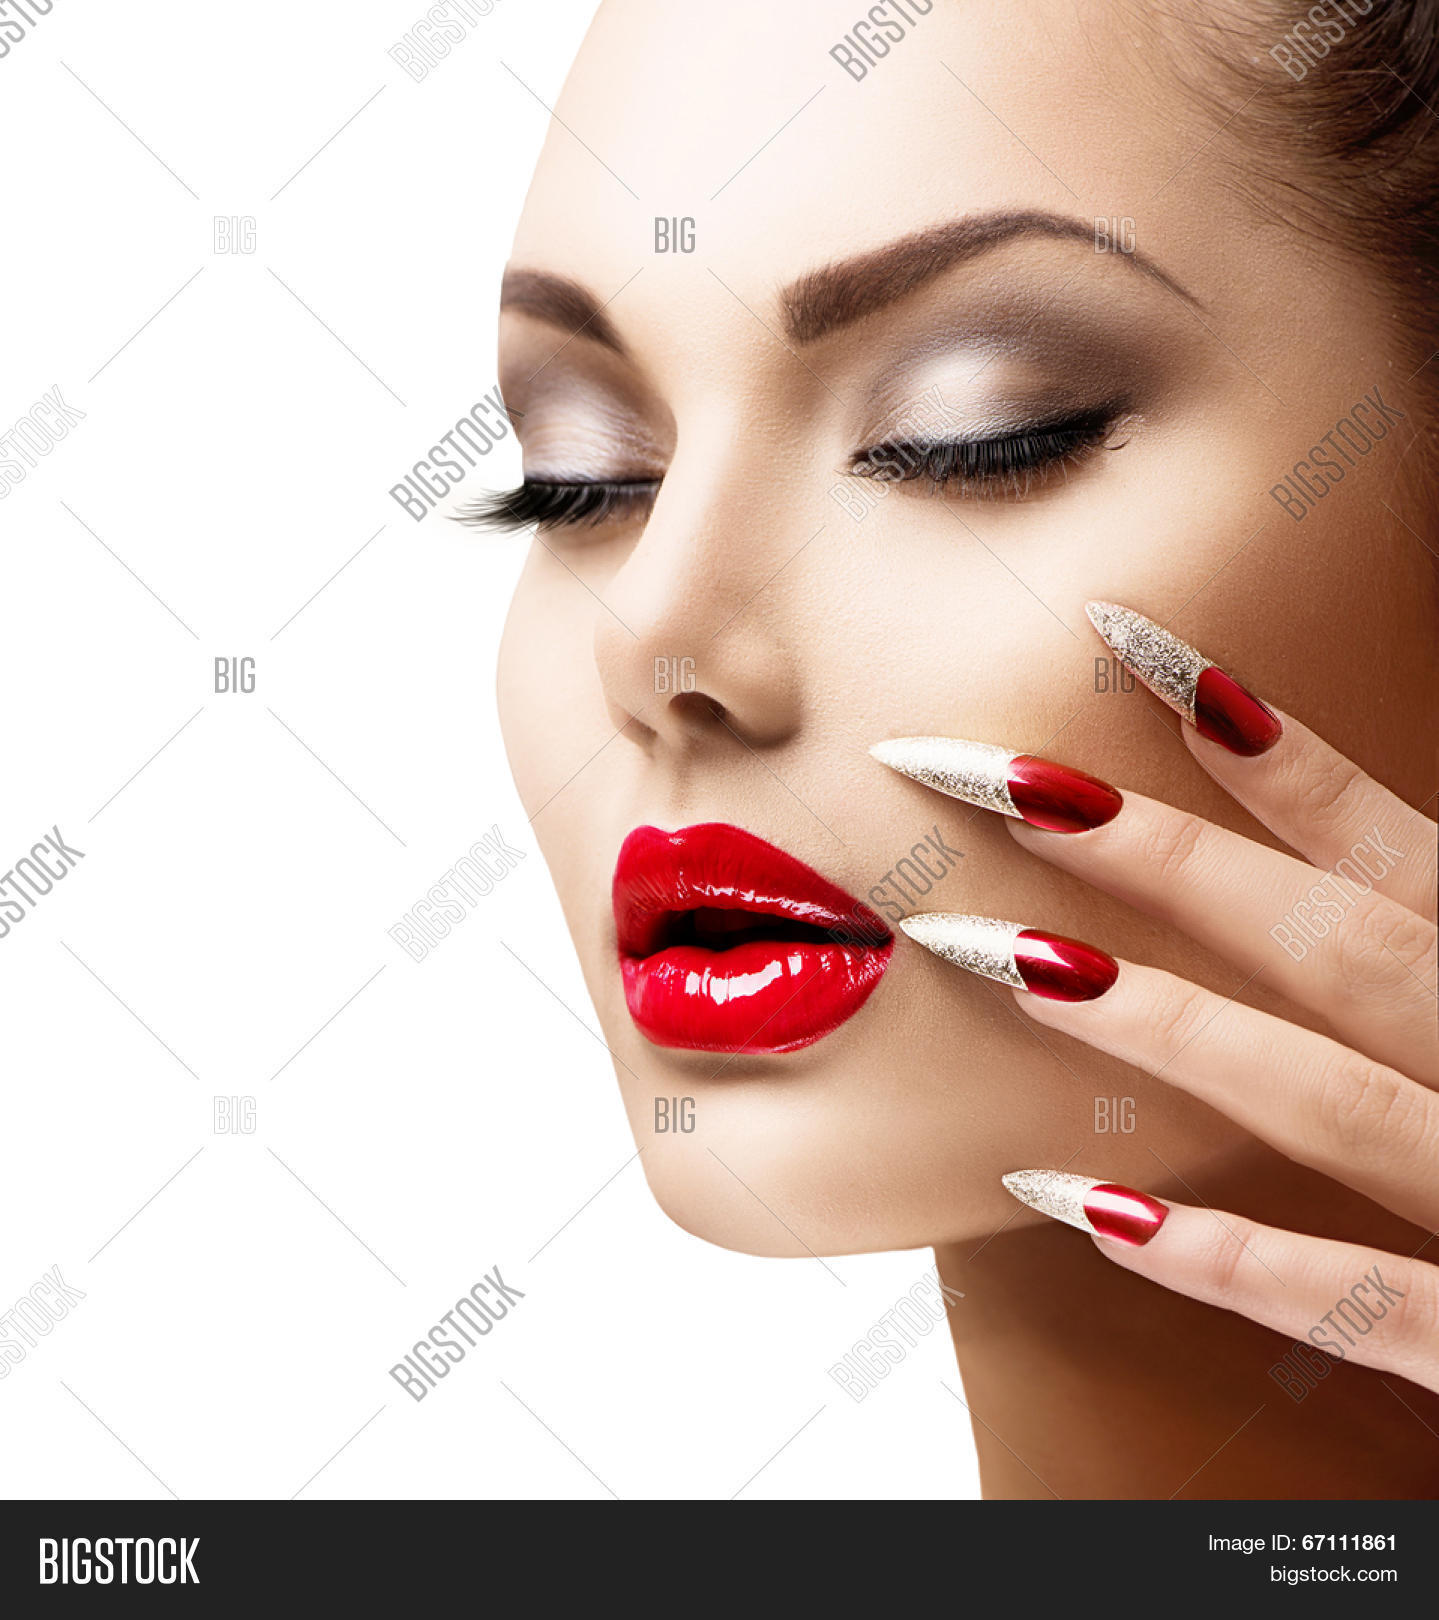 Fashion Beauty Model Girl Manicure Image Photo Bigstock